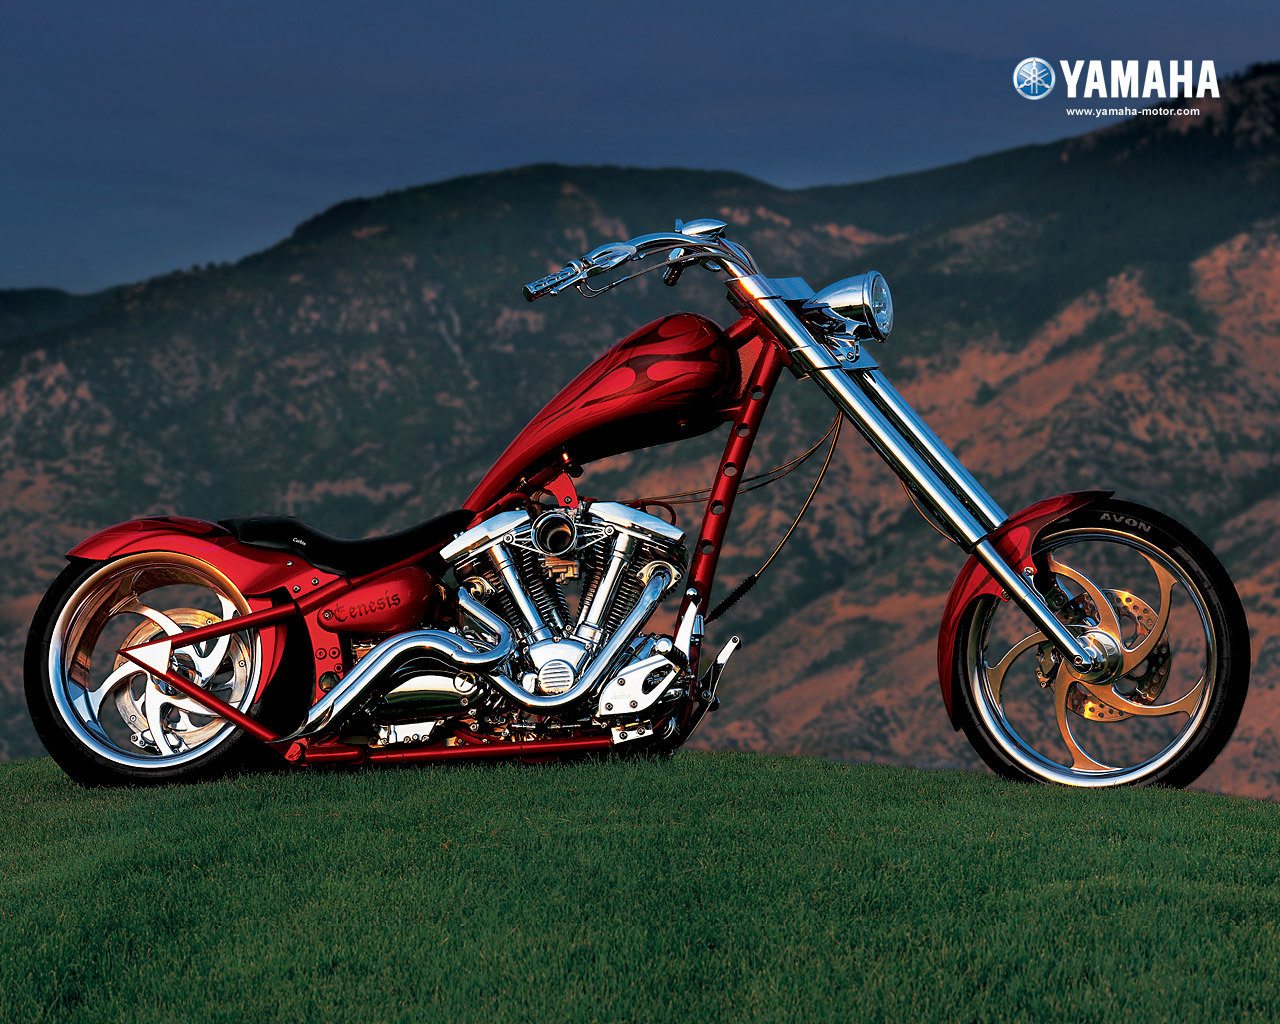 YAMAHA CHOPPER - Motorcycles Wallpaper (17268240) - Fanpop ...